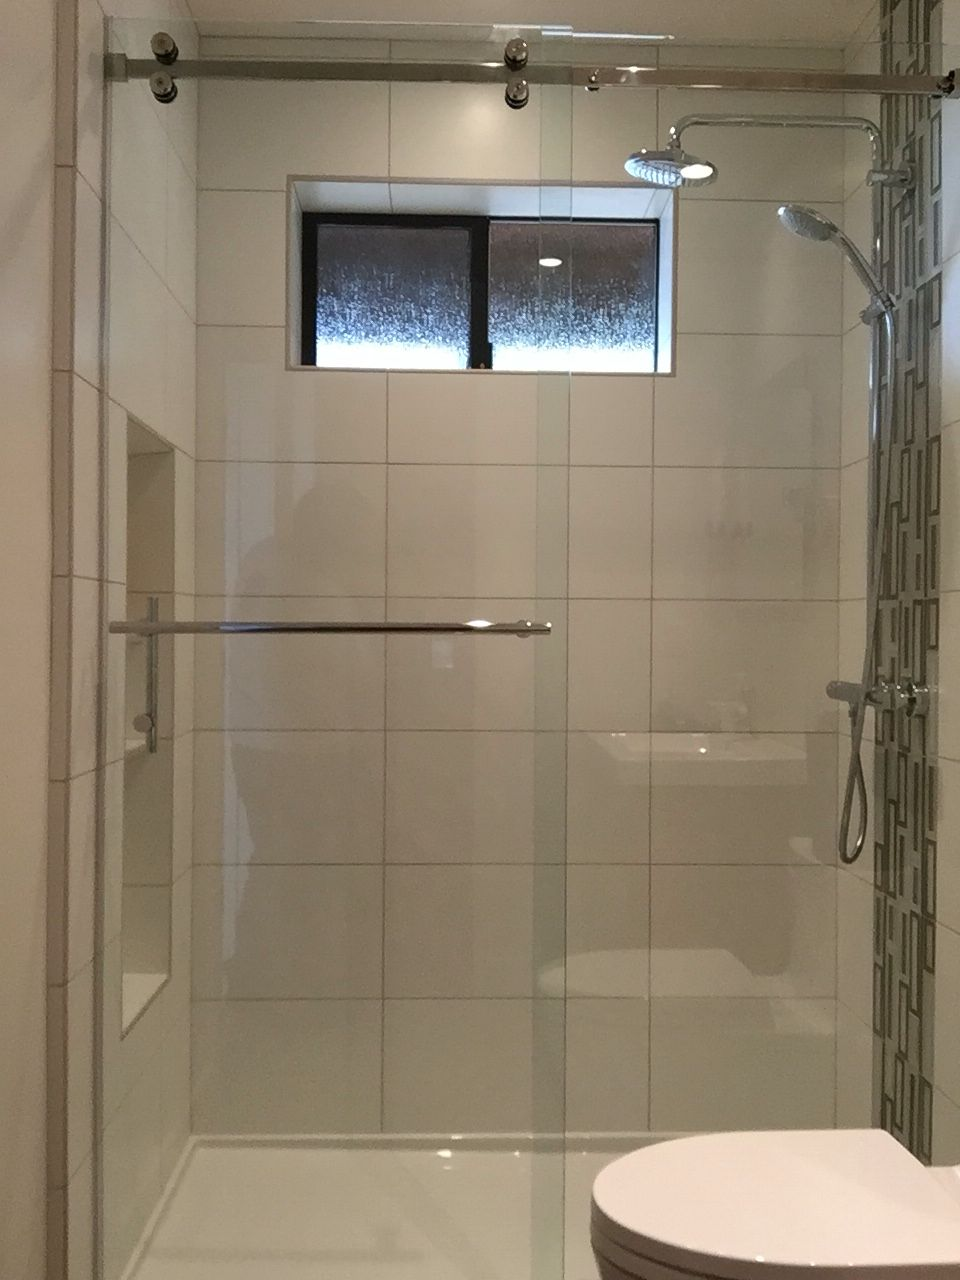 Serenity series frameless sliding shower enclosure 38 clear serenity series frameless sliding shower enclosure 38 clear glass with polished stainless eventelaan Image collections